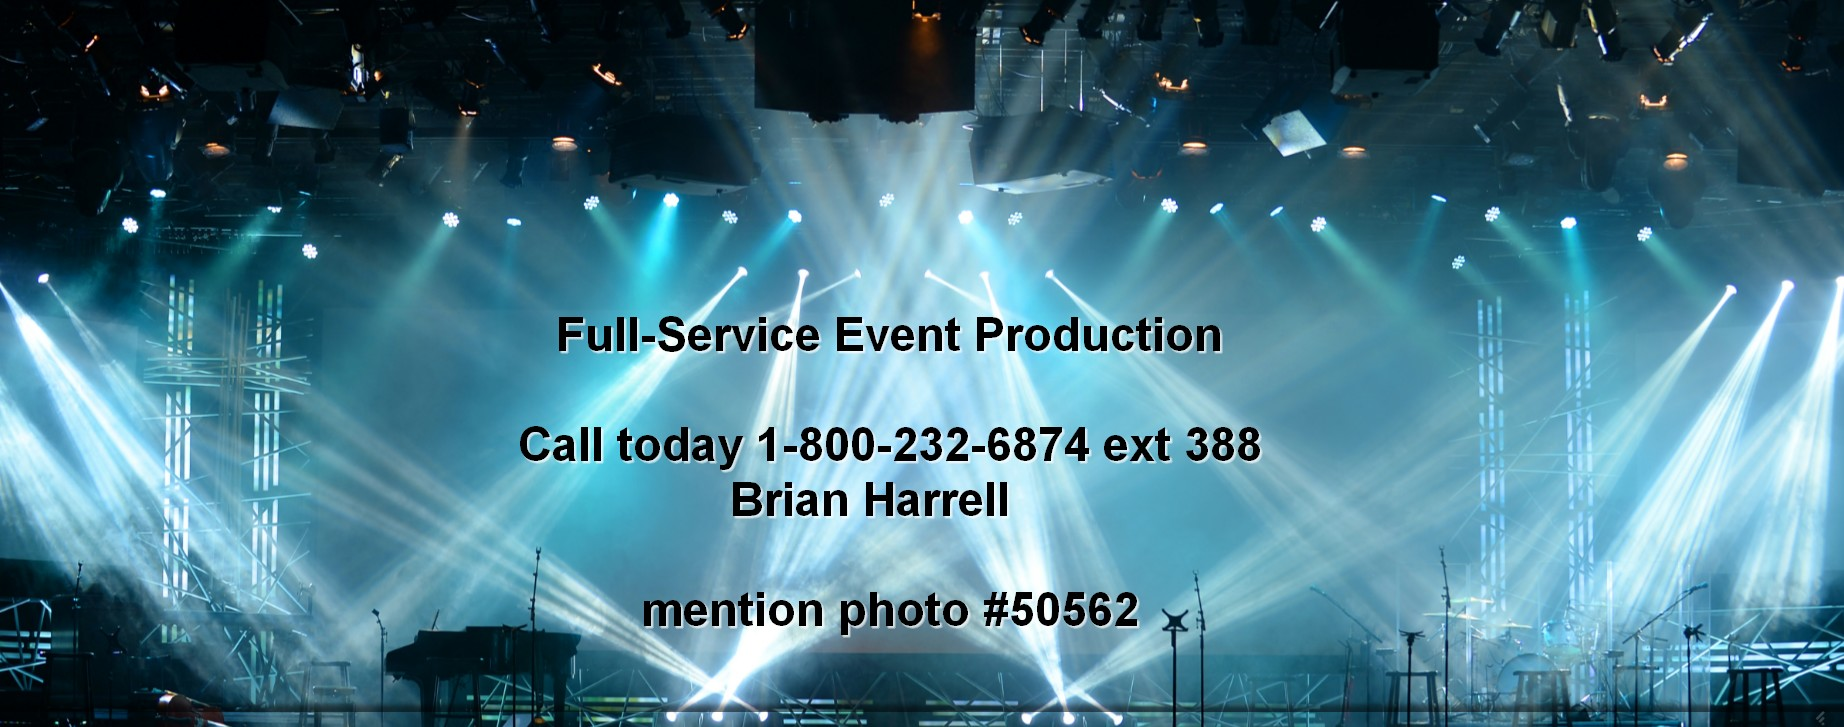 full service event production concert production services nationwide 50562